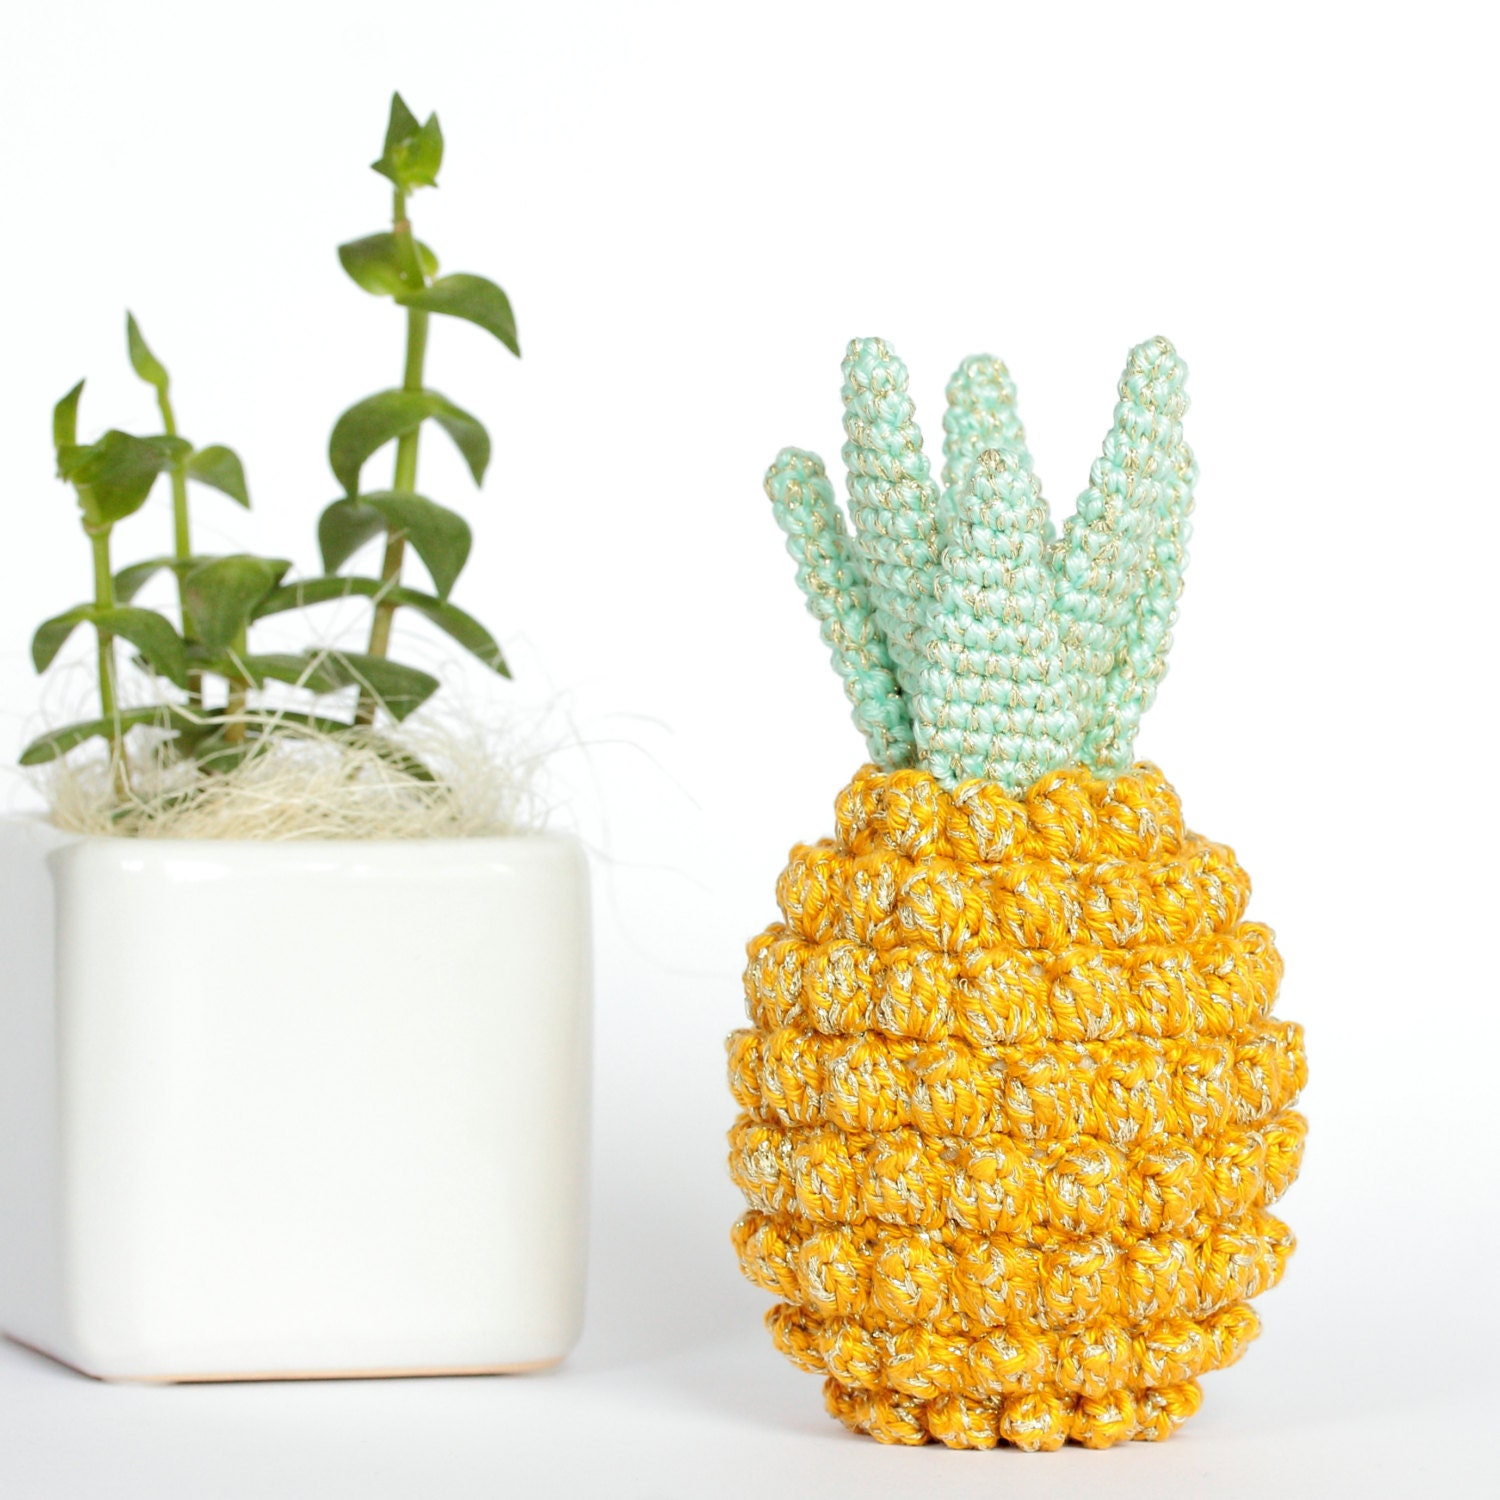 Crochet pineapple decor pineapple home decor pineapple for Ananas dekoration